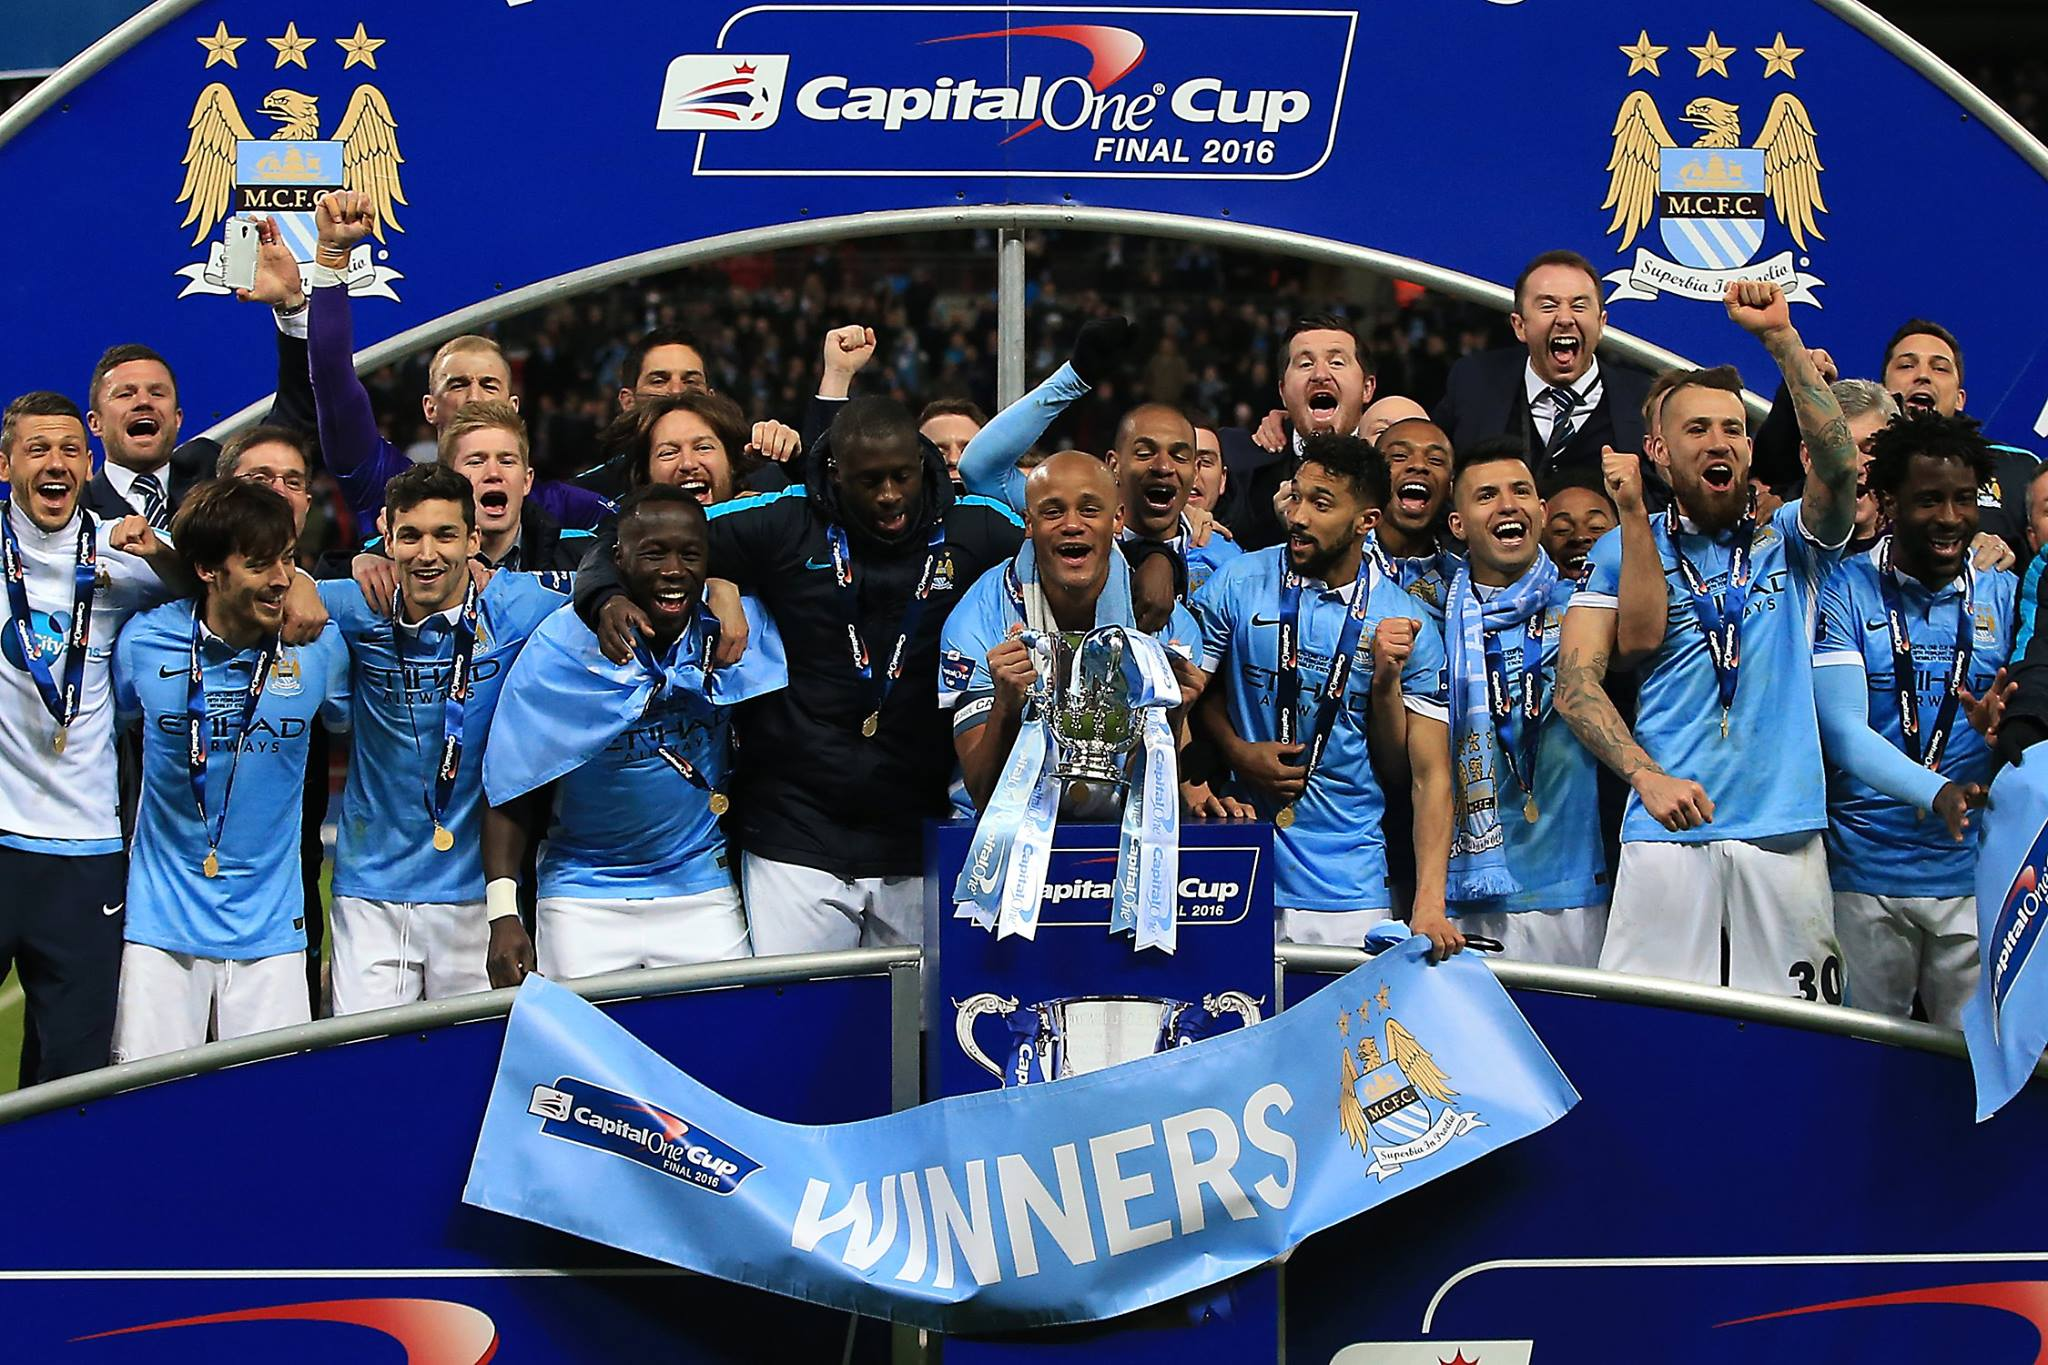 Winners - Sterling and City won the League Cup last season against Milner's Liverpool.